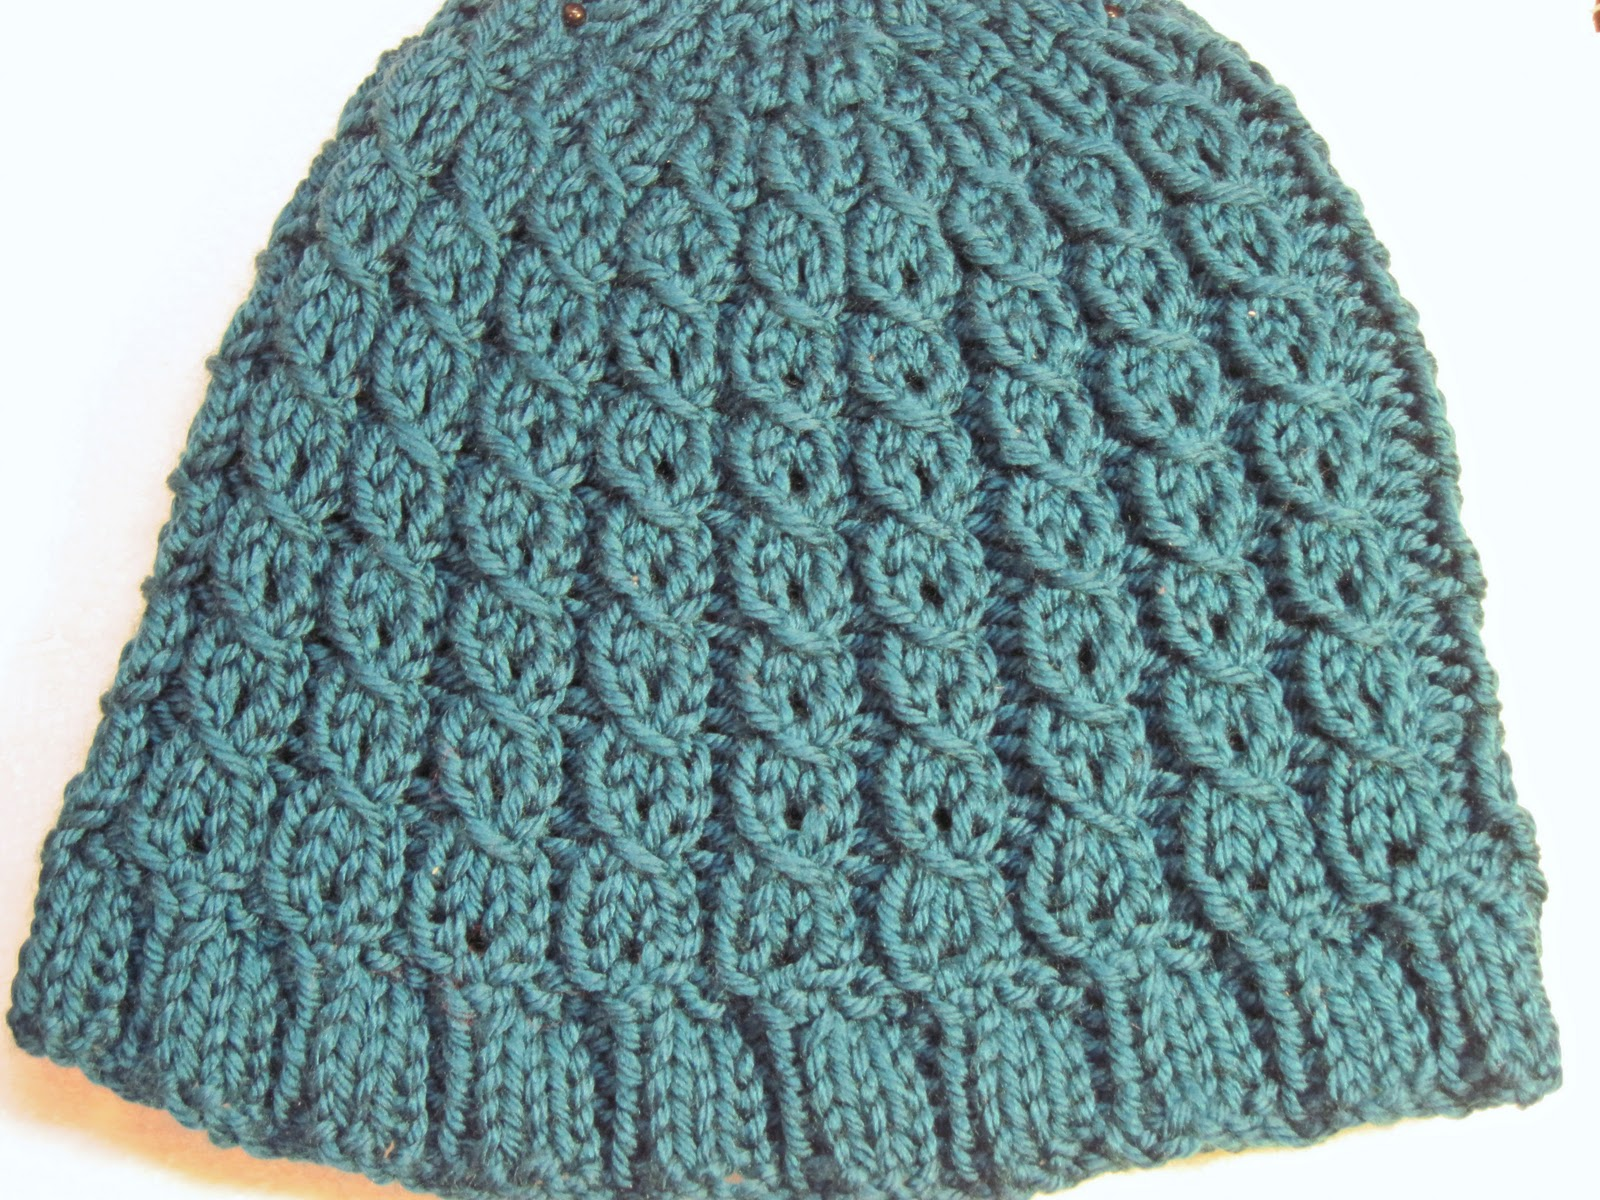 Knitting Stitch Patterns Mock Cable : Bellas Crafty Mom: Teal Mock Cable Hat